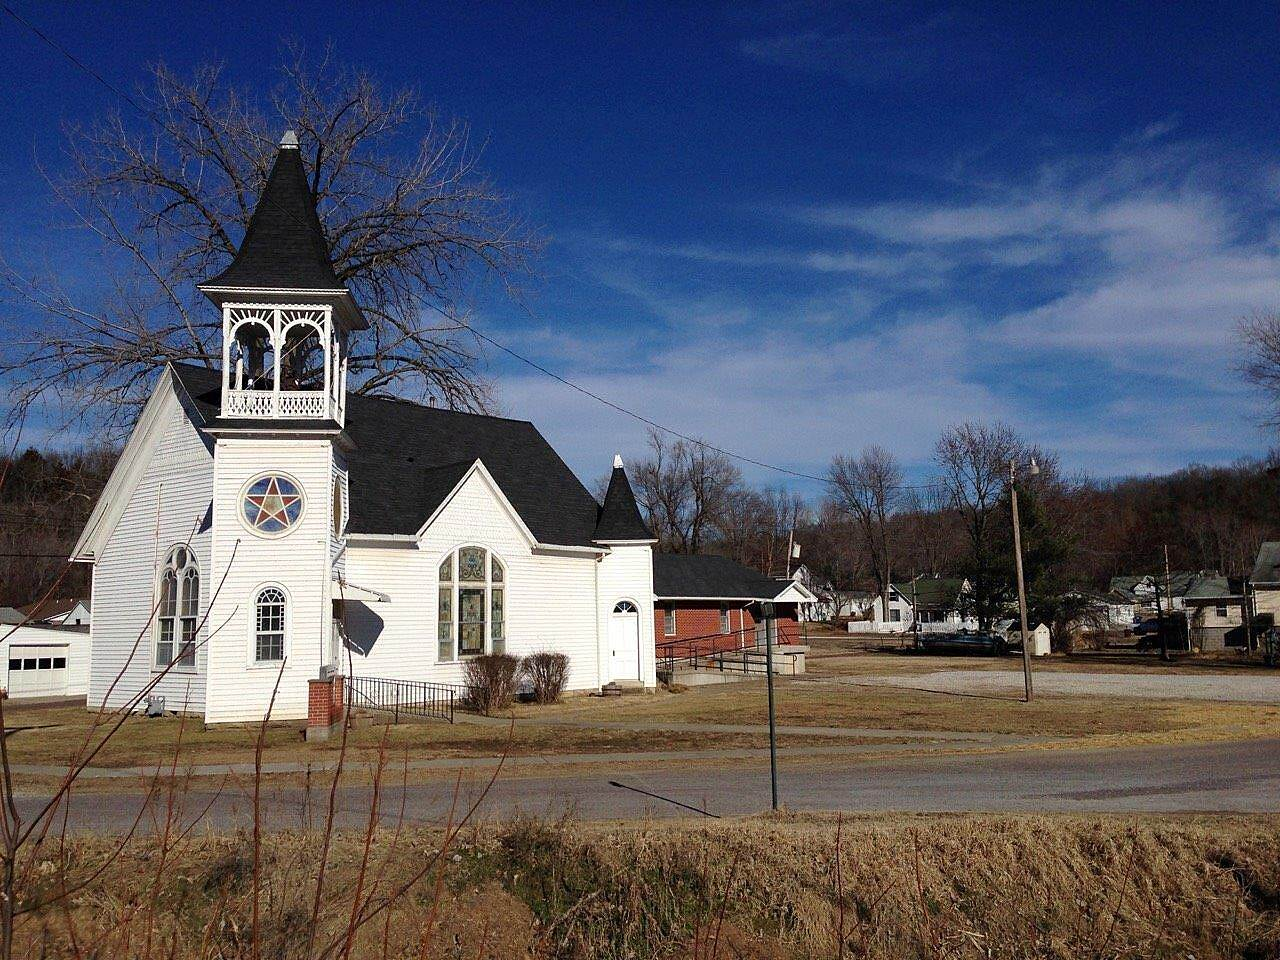 Katy Trail State Park A Church In Hartsburg, MO Beautiful day on Saturday, and the church is ready for Sunday...